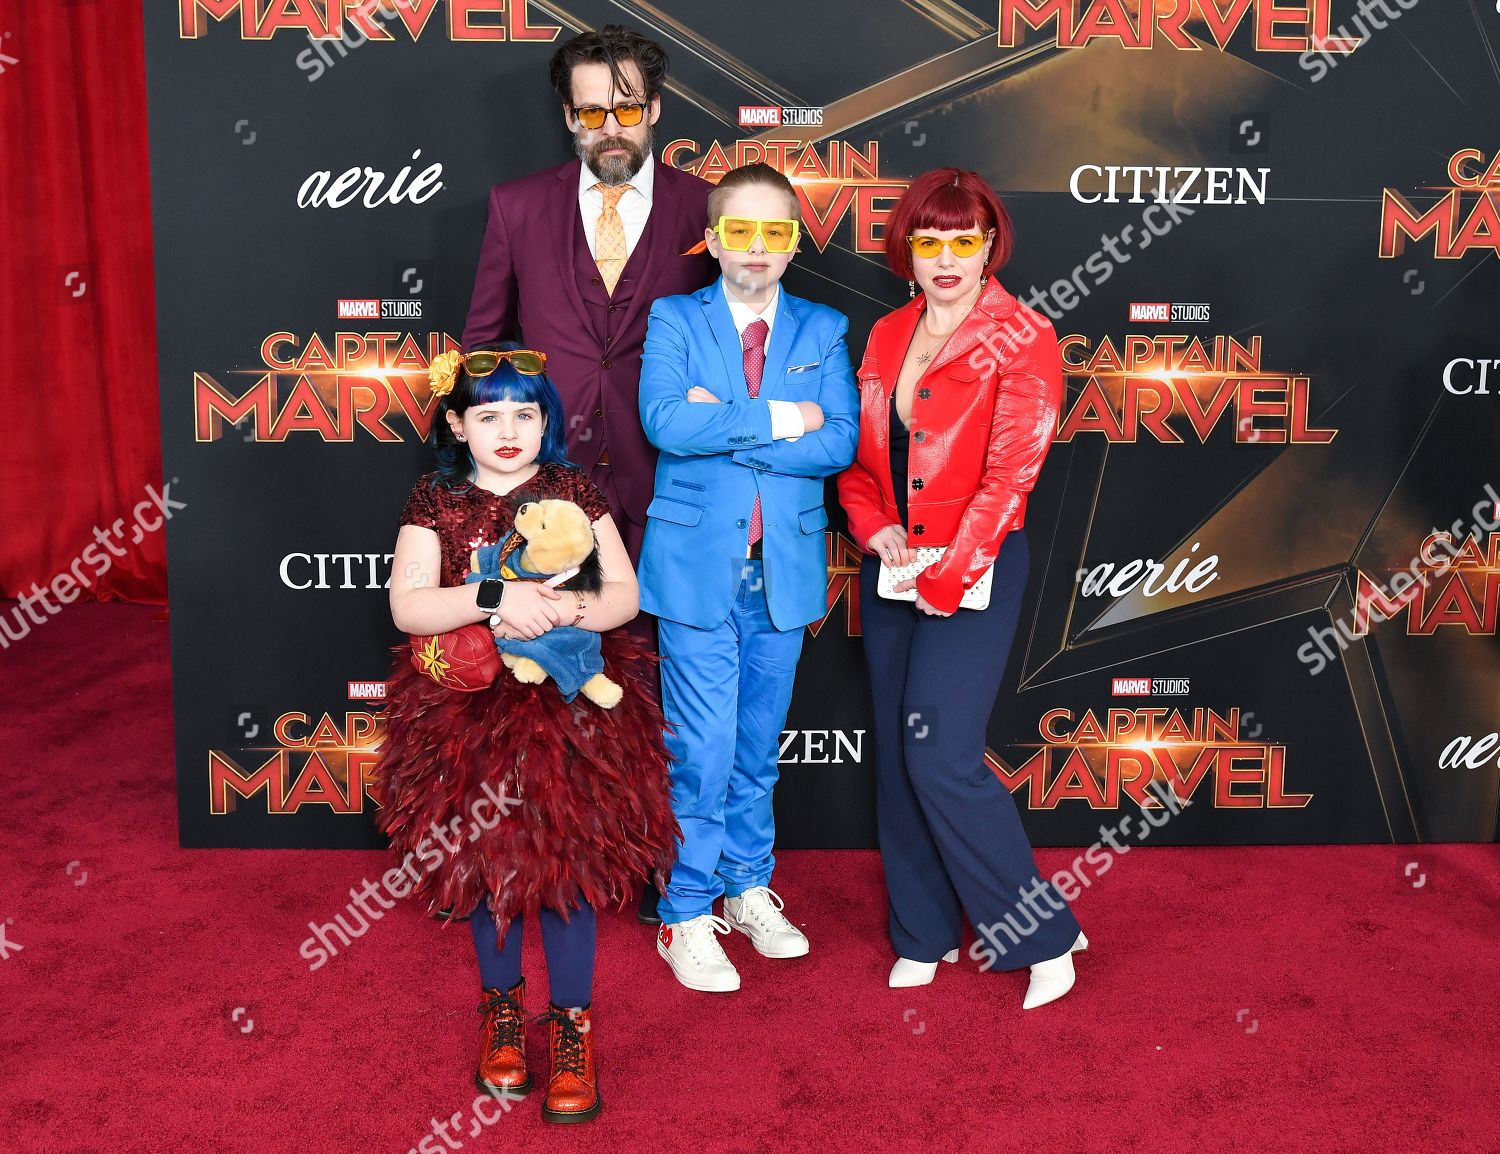 captain-marvel-film-premiere-arrivals-el-capitan-theatre-los-angeles-usa-04-mar-2019-shutterstock-ed